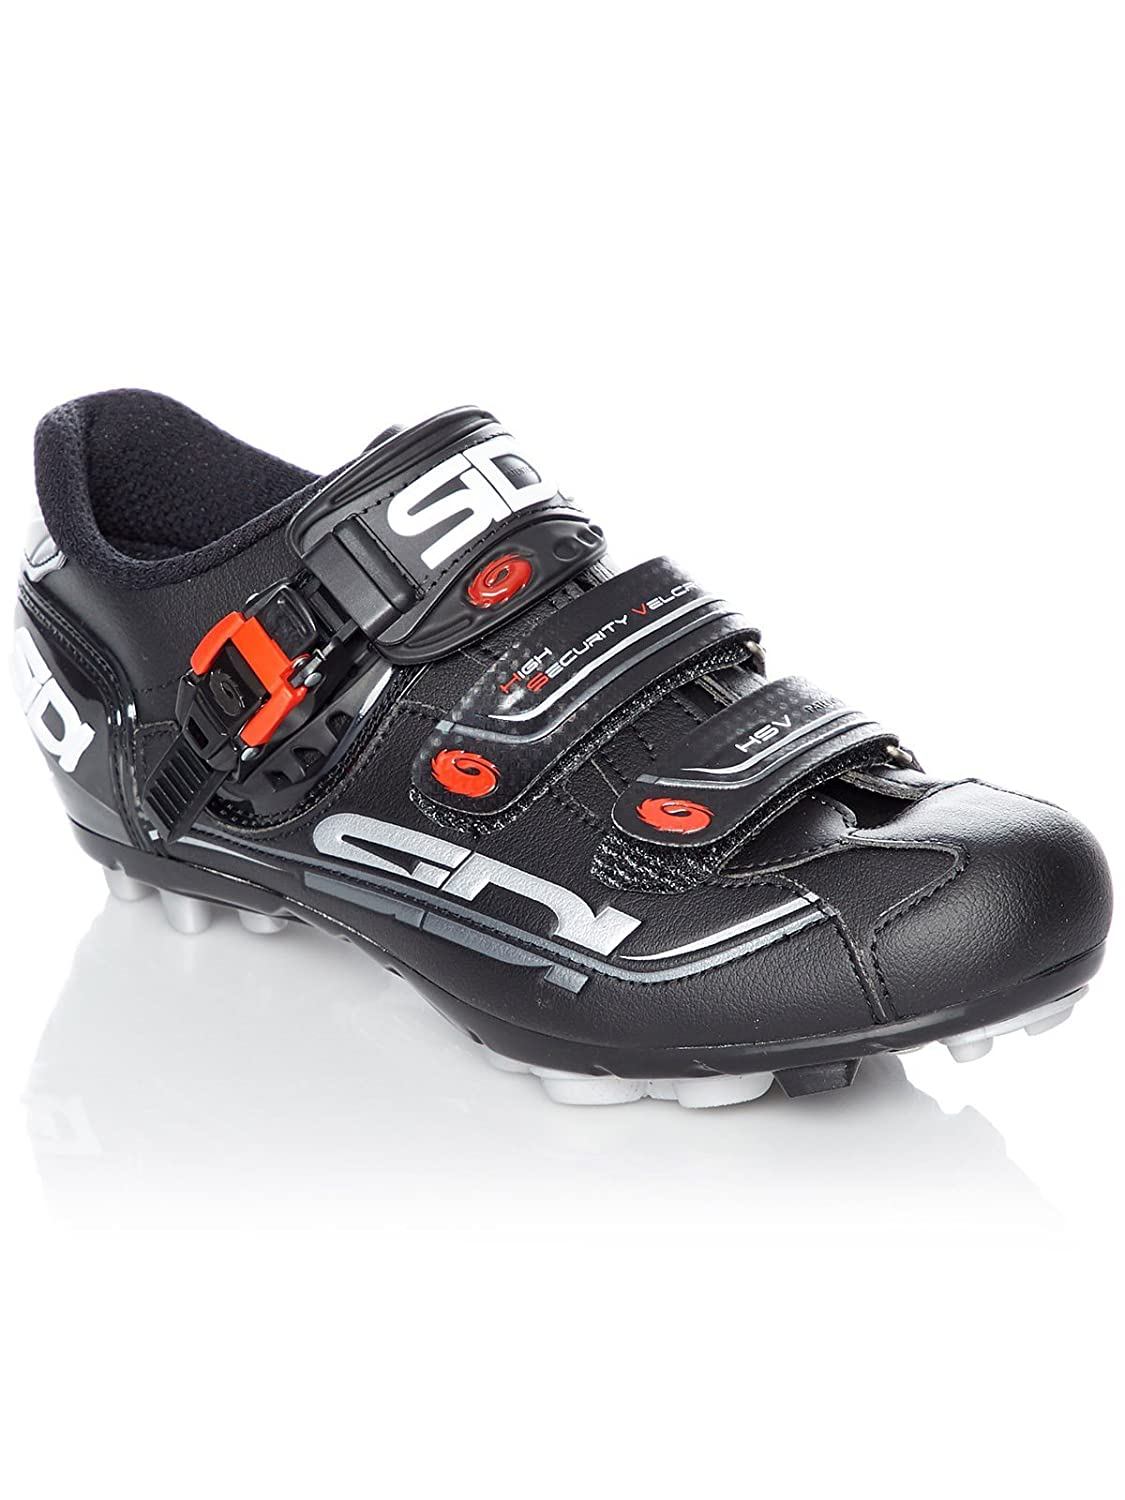 Zapatillas MTB Sidi Dominator 7 Fit Negro-Negro: Amazon.es: Zapatos y complementos